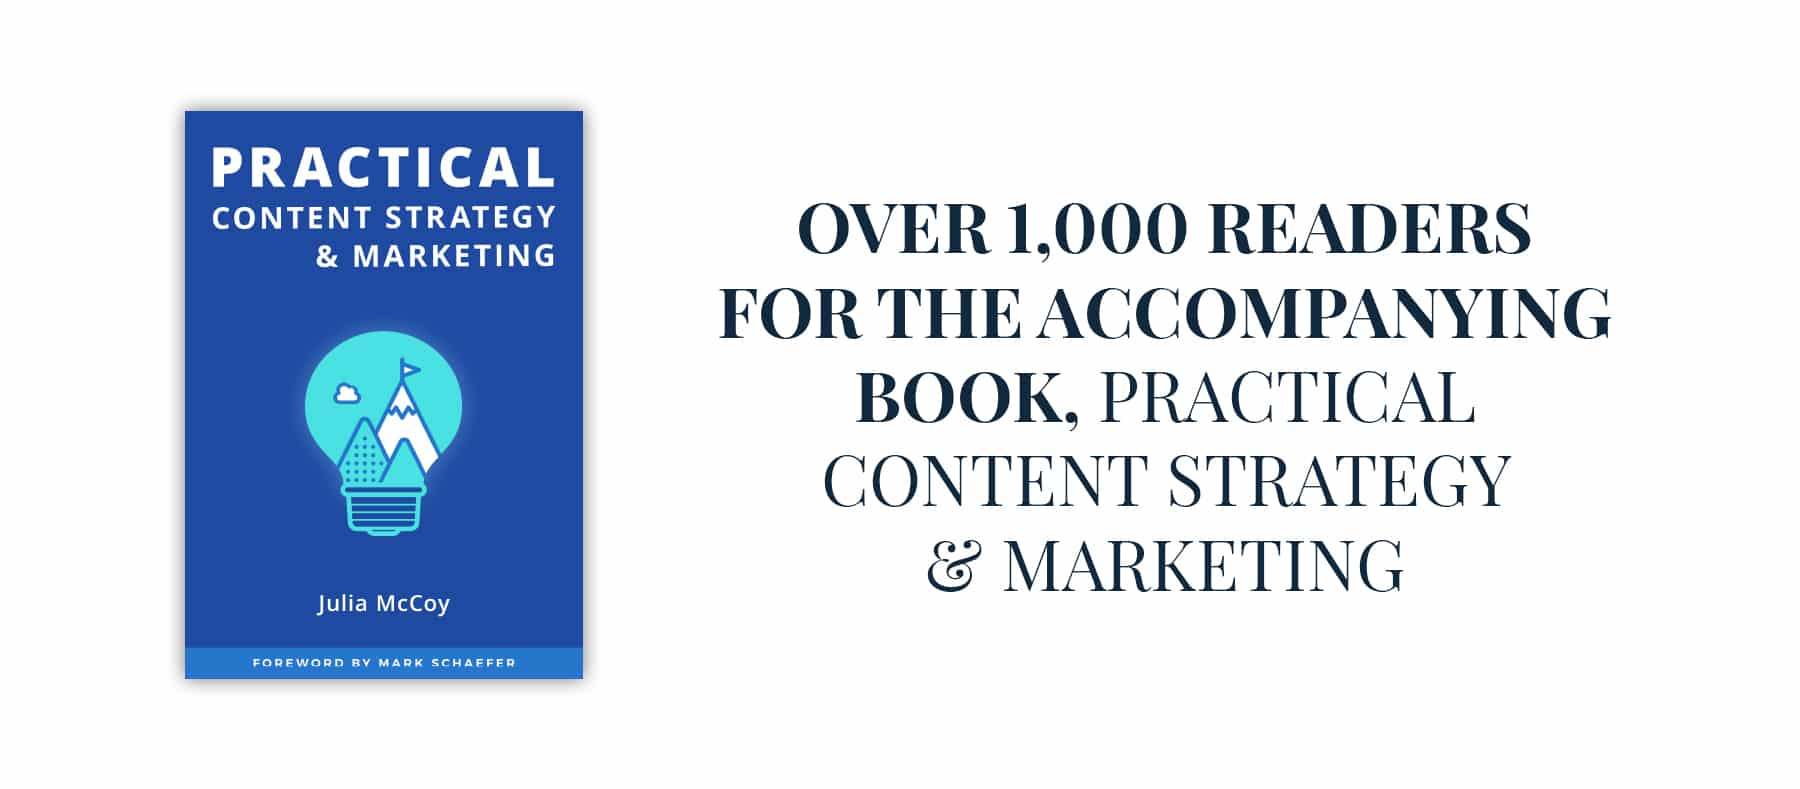 content strategy & marketing course sales page book image